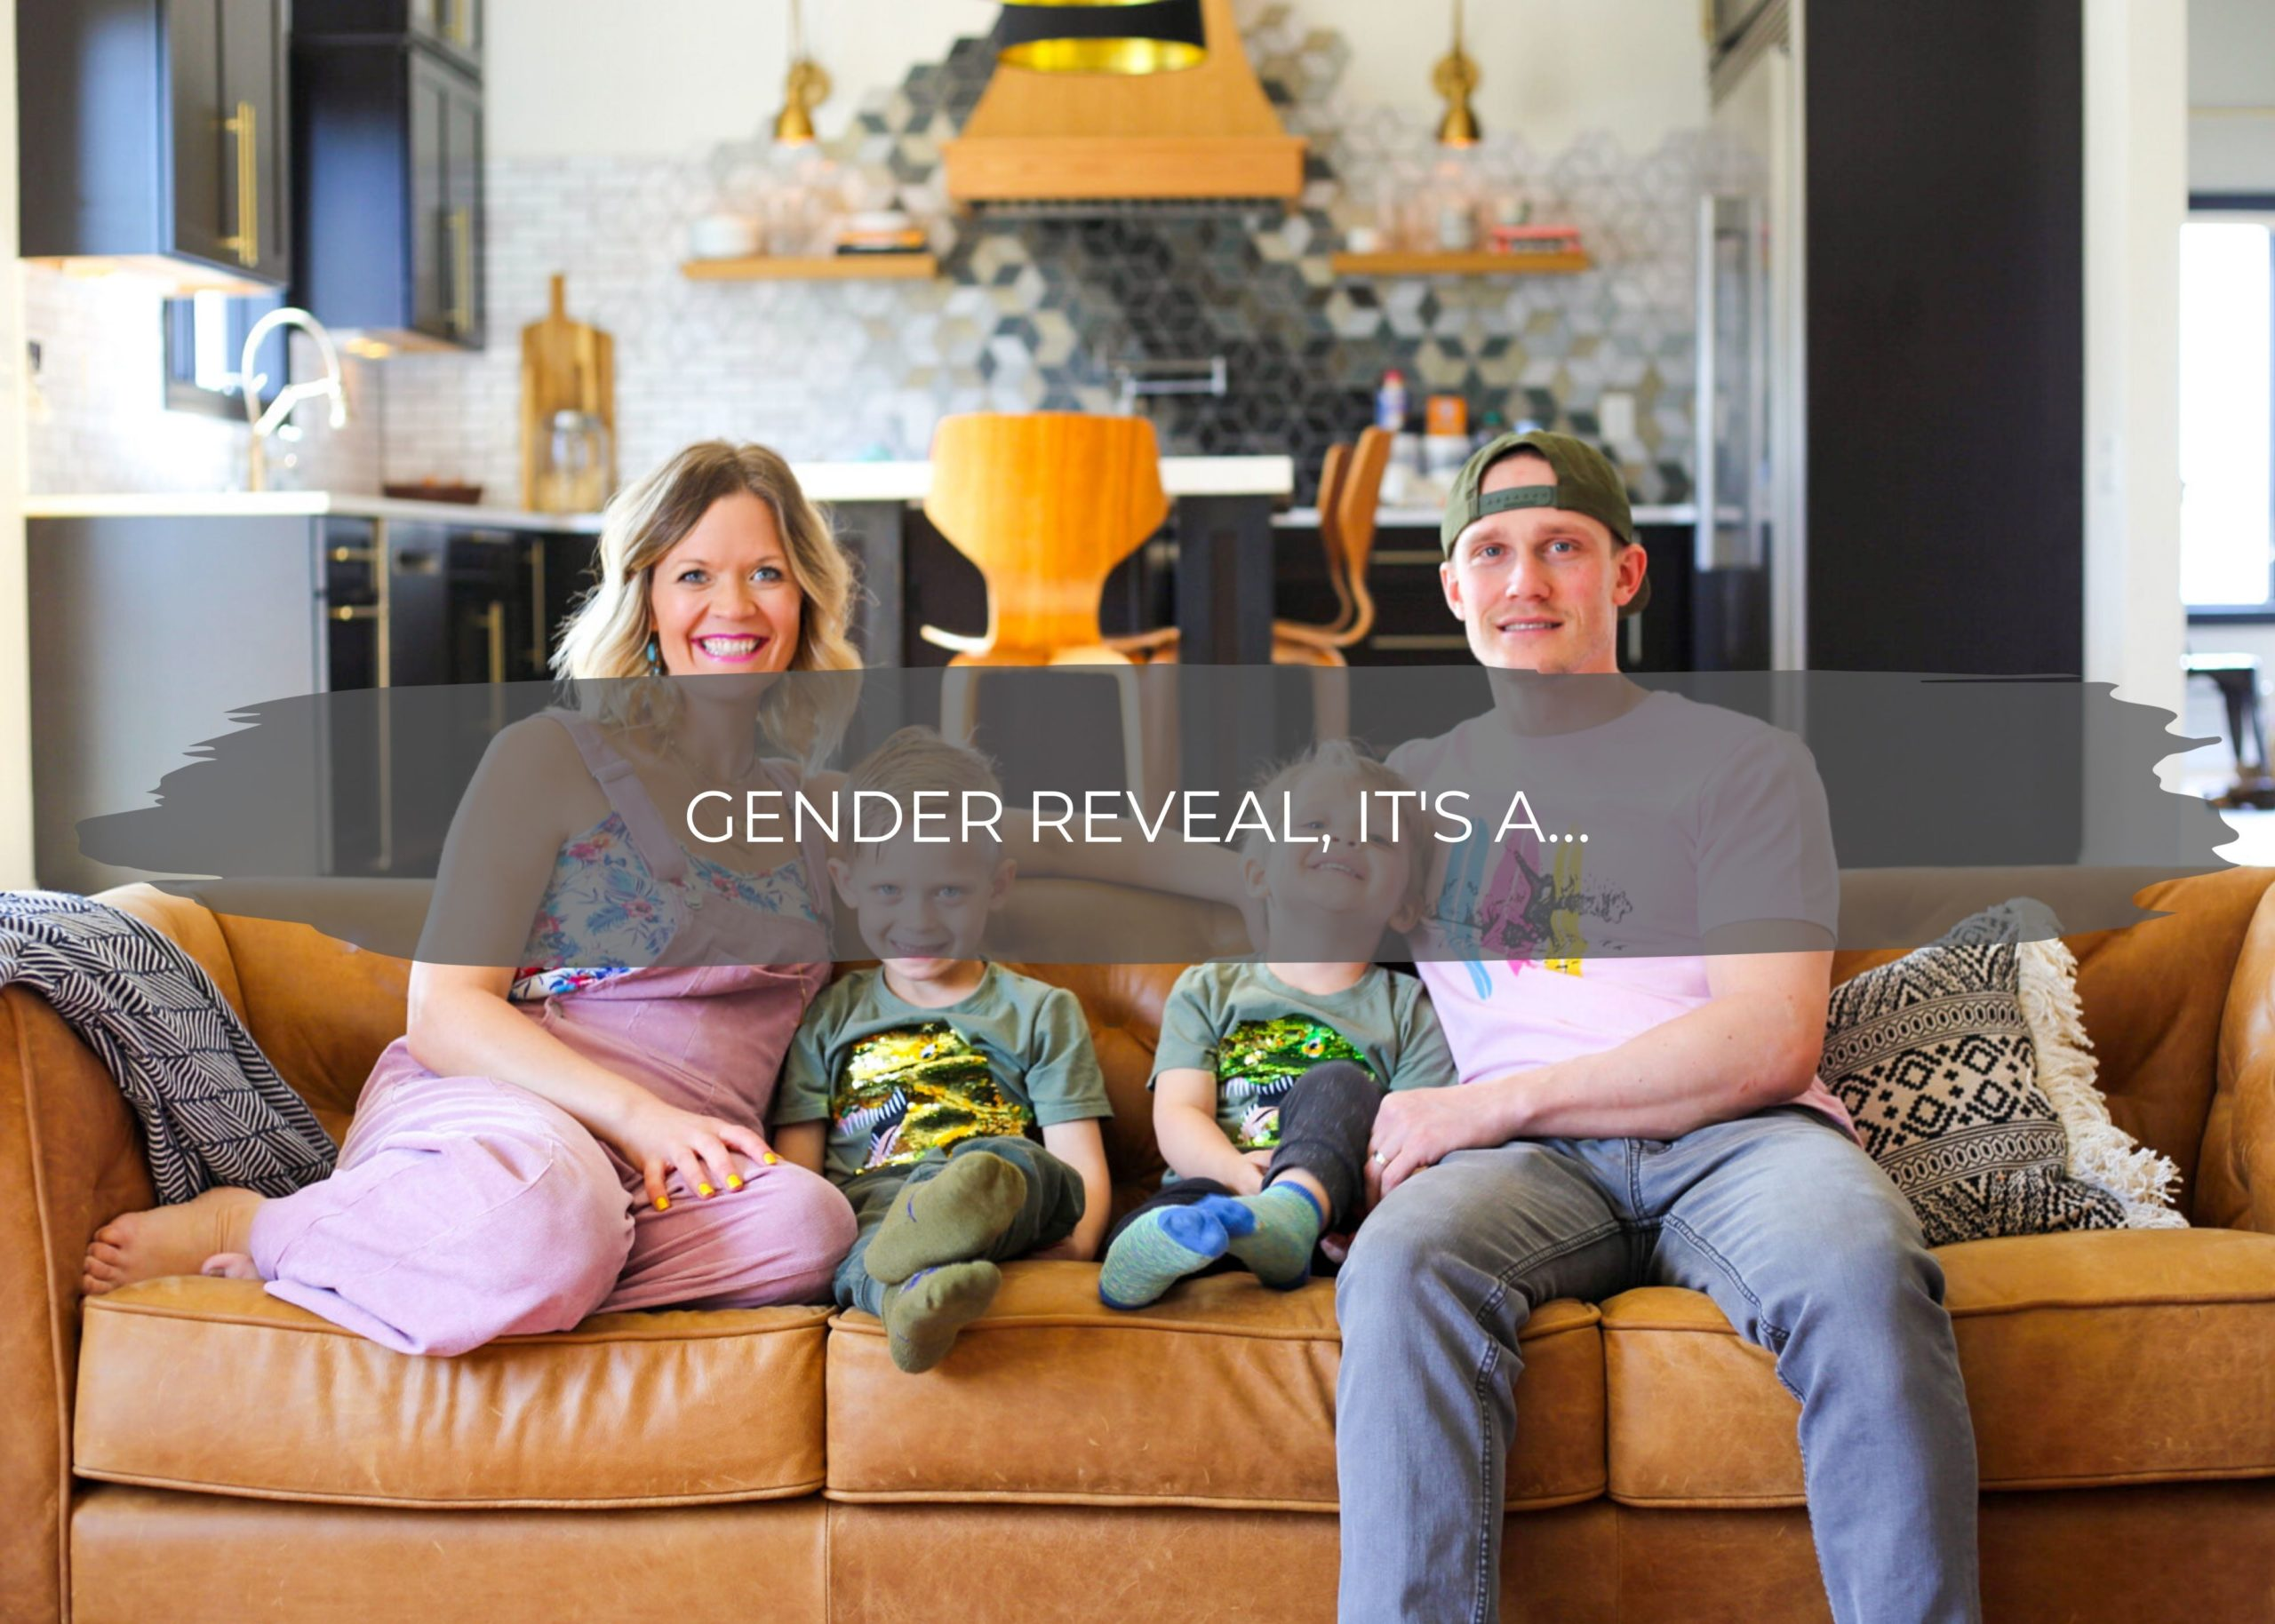 Gender Reveal, IT'S A... | construction2style